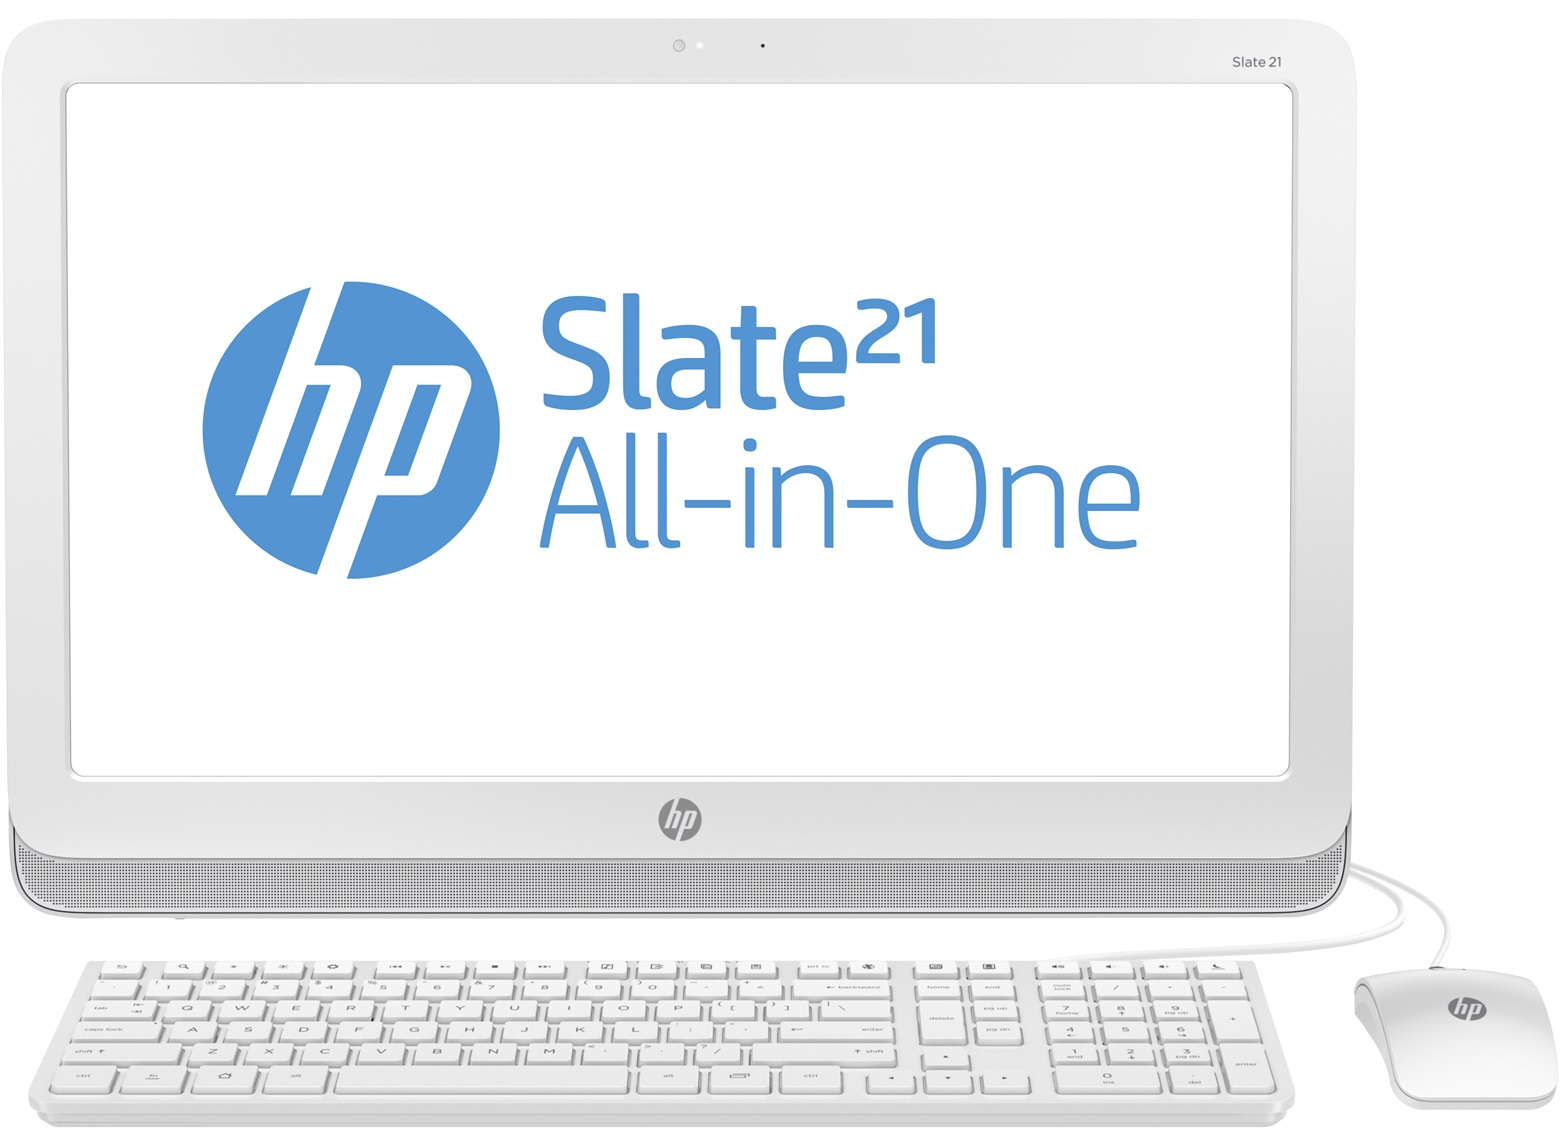 HP Slate 21 Device Specifications